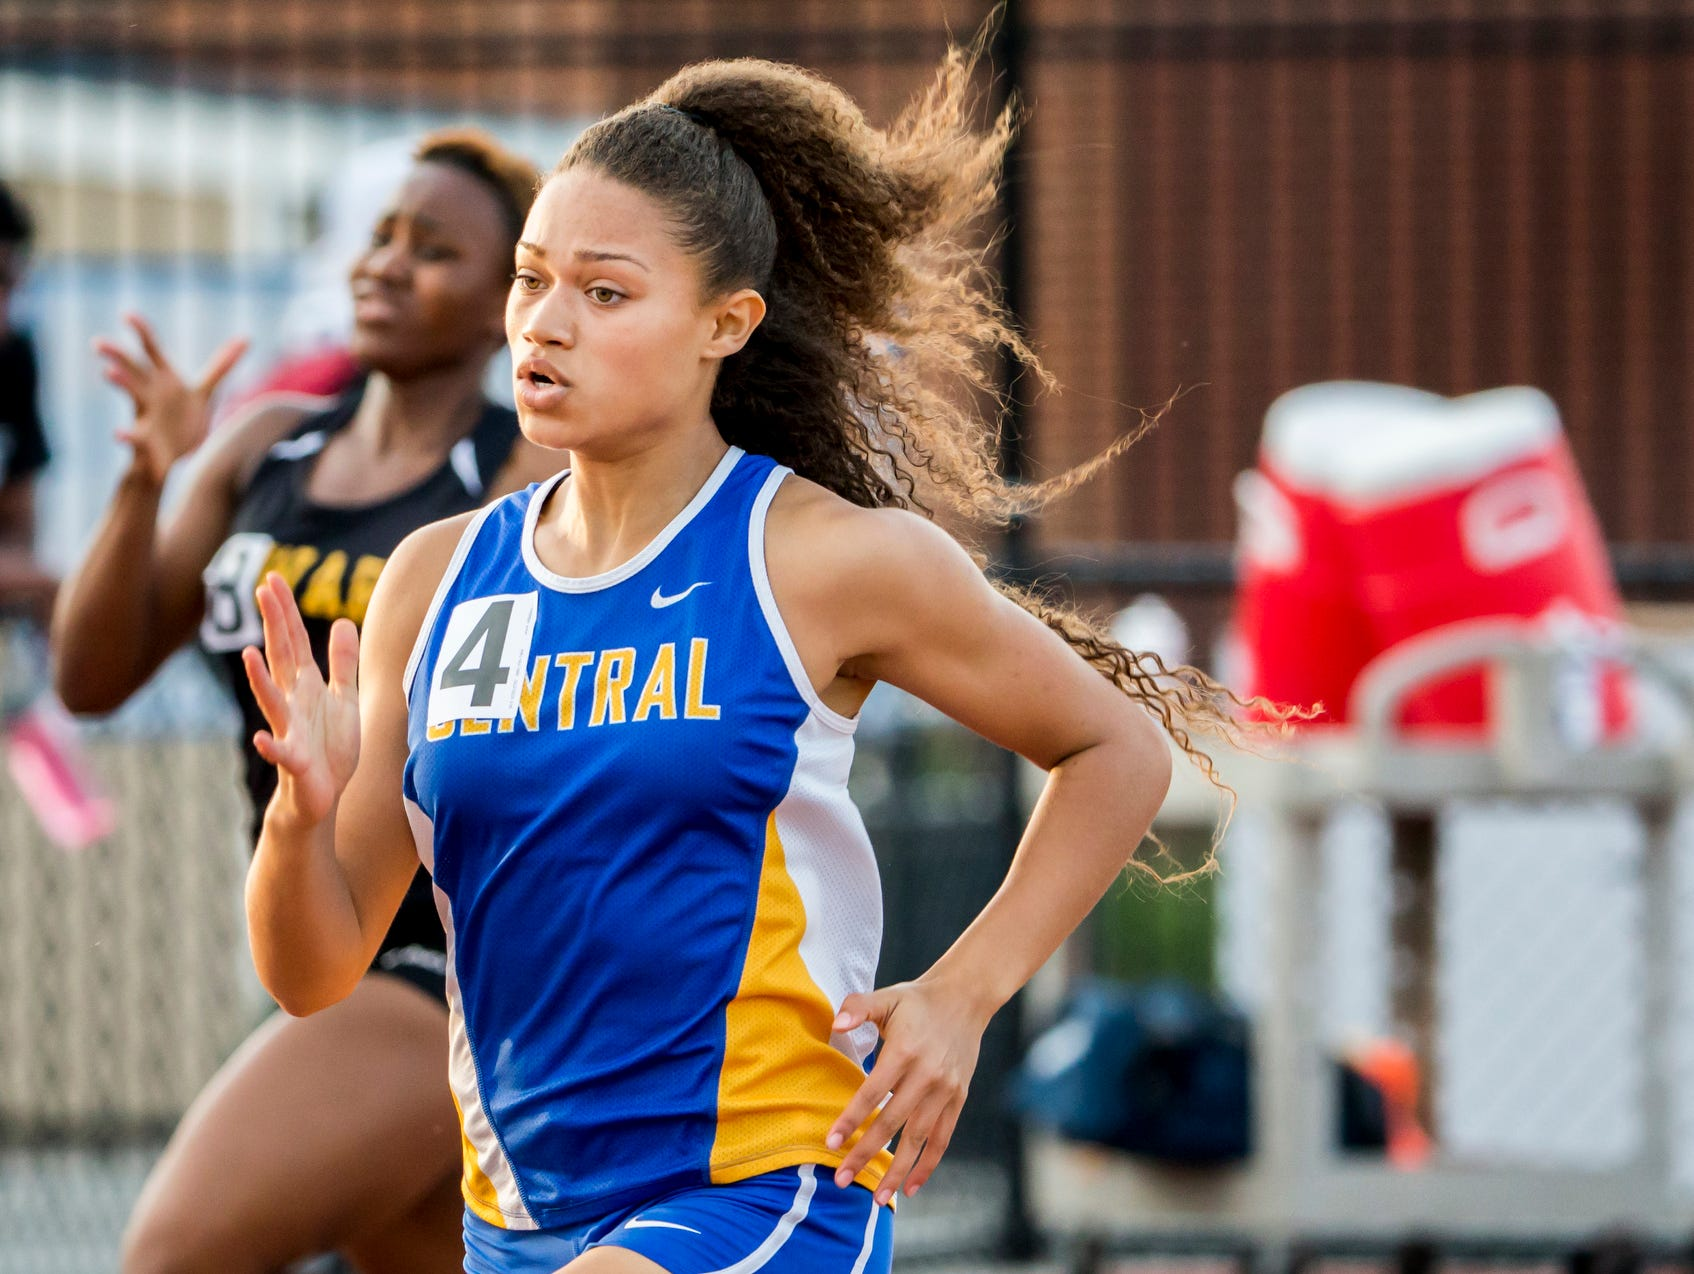 Sussex Central's Naiya Smith runs into the final stretch as she wins the Girls 400 Meter Dash at the Meet of Champions at Dover High School on Wednesday evening.